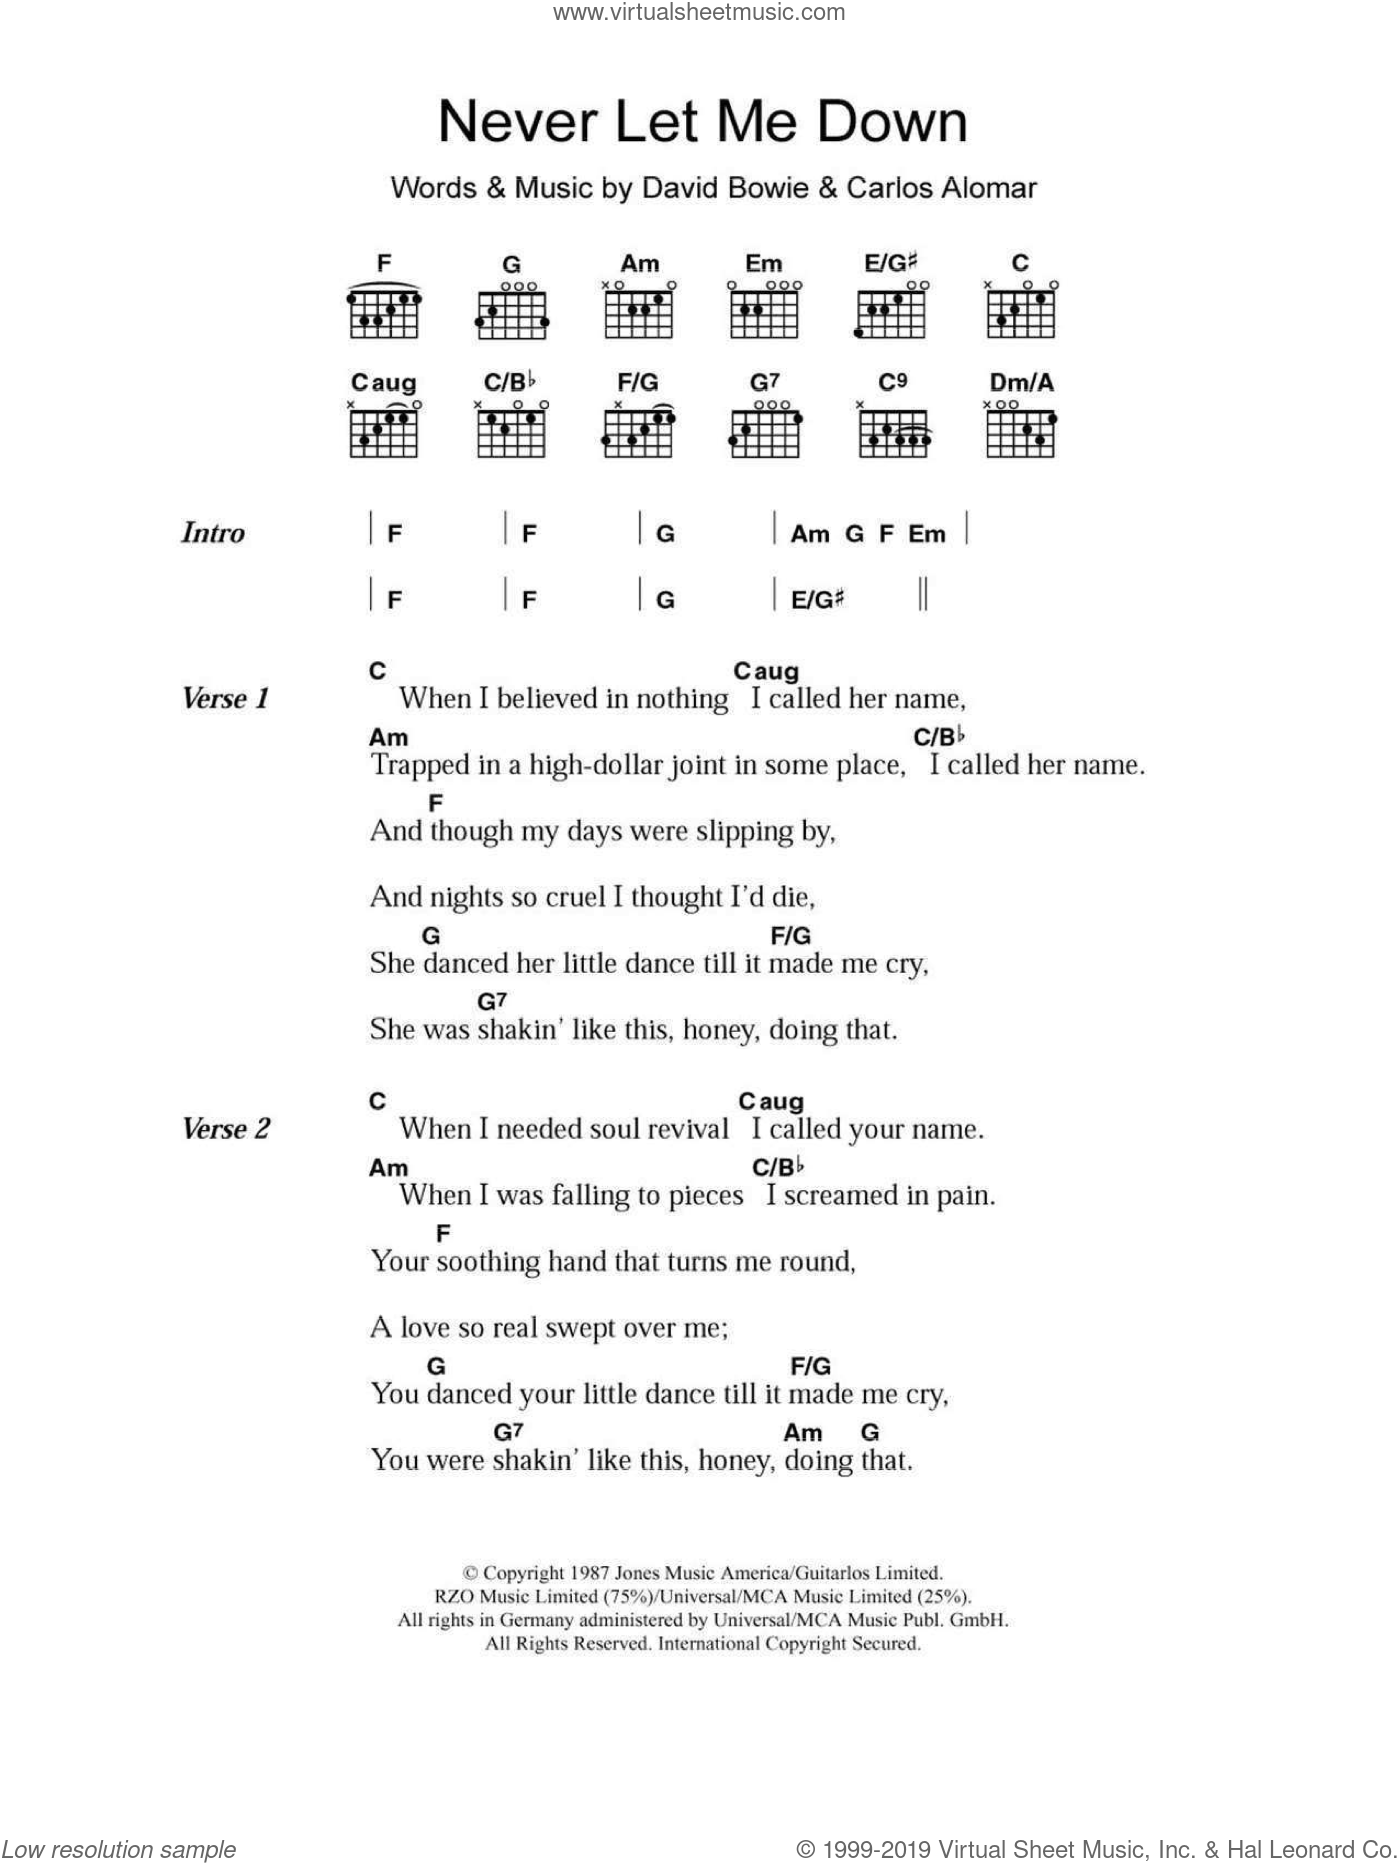 Never Let Me Down sheet music for guitar (chords) by Carlos Alomar